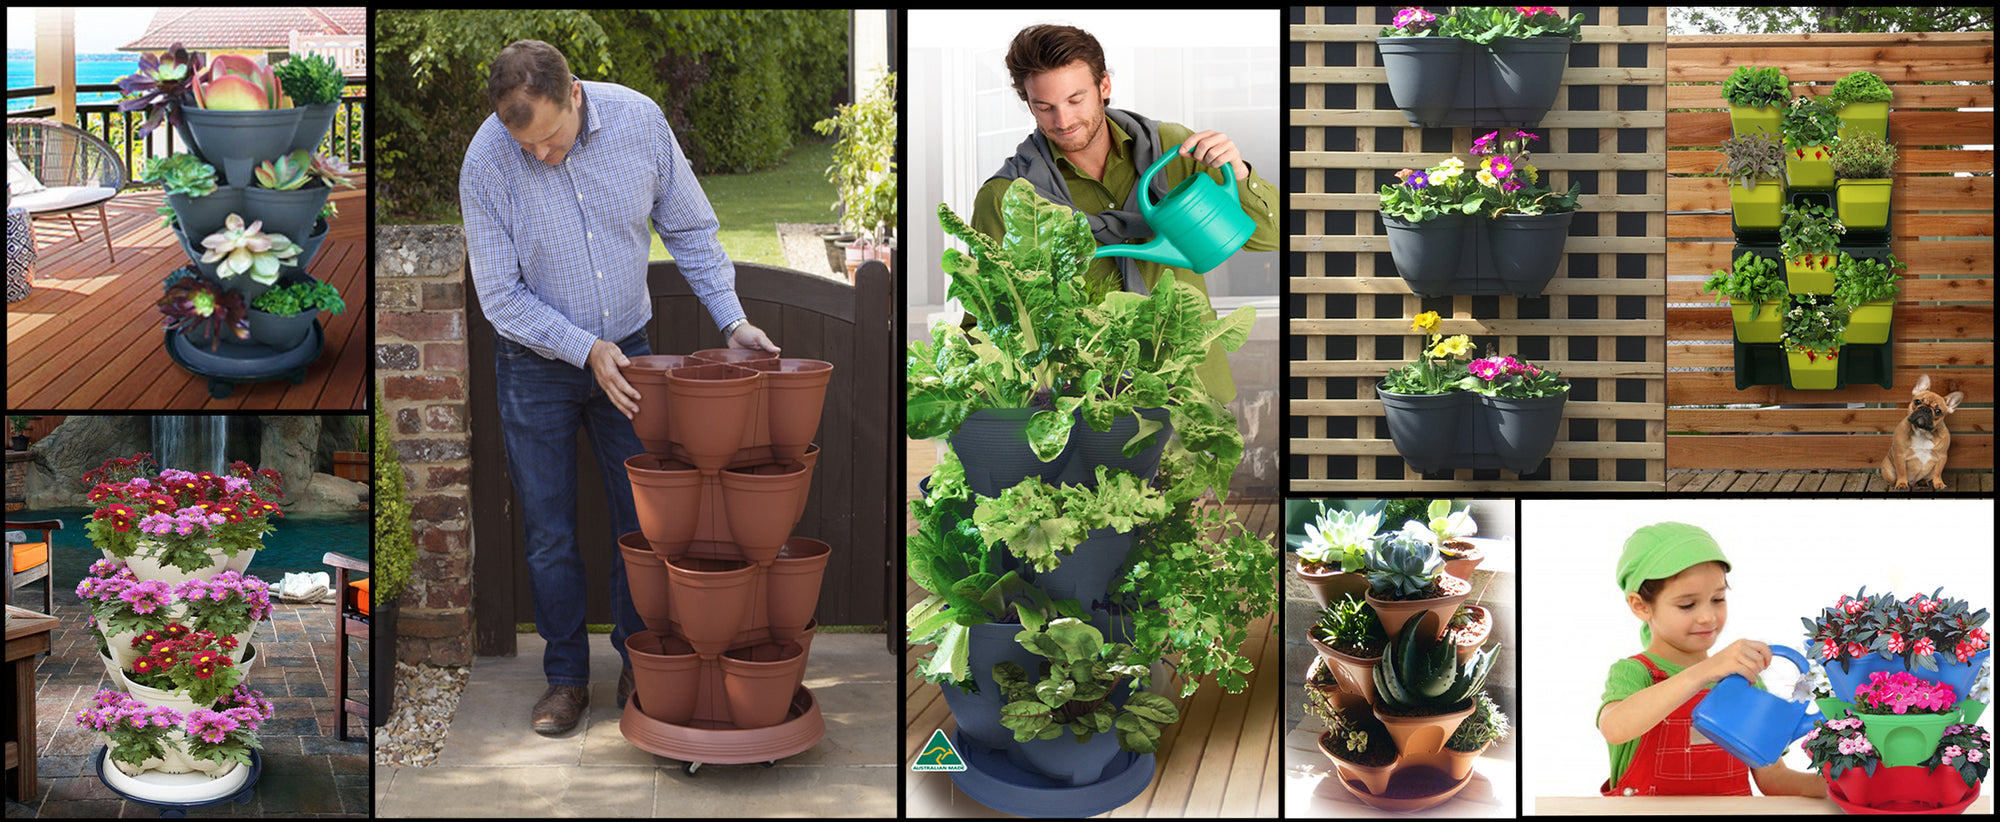 Stackapots provide a range of Stackable Pots and Planters for Vertical Gardening. Vertical Gardens of Stackable pots, Wall Planters, Post Planters and Hanging Planters made here in Australia. They will accept  self-watering or Hydroponic systems